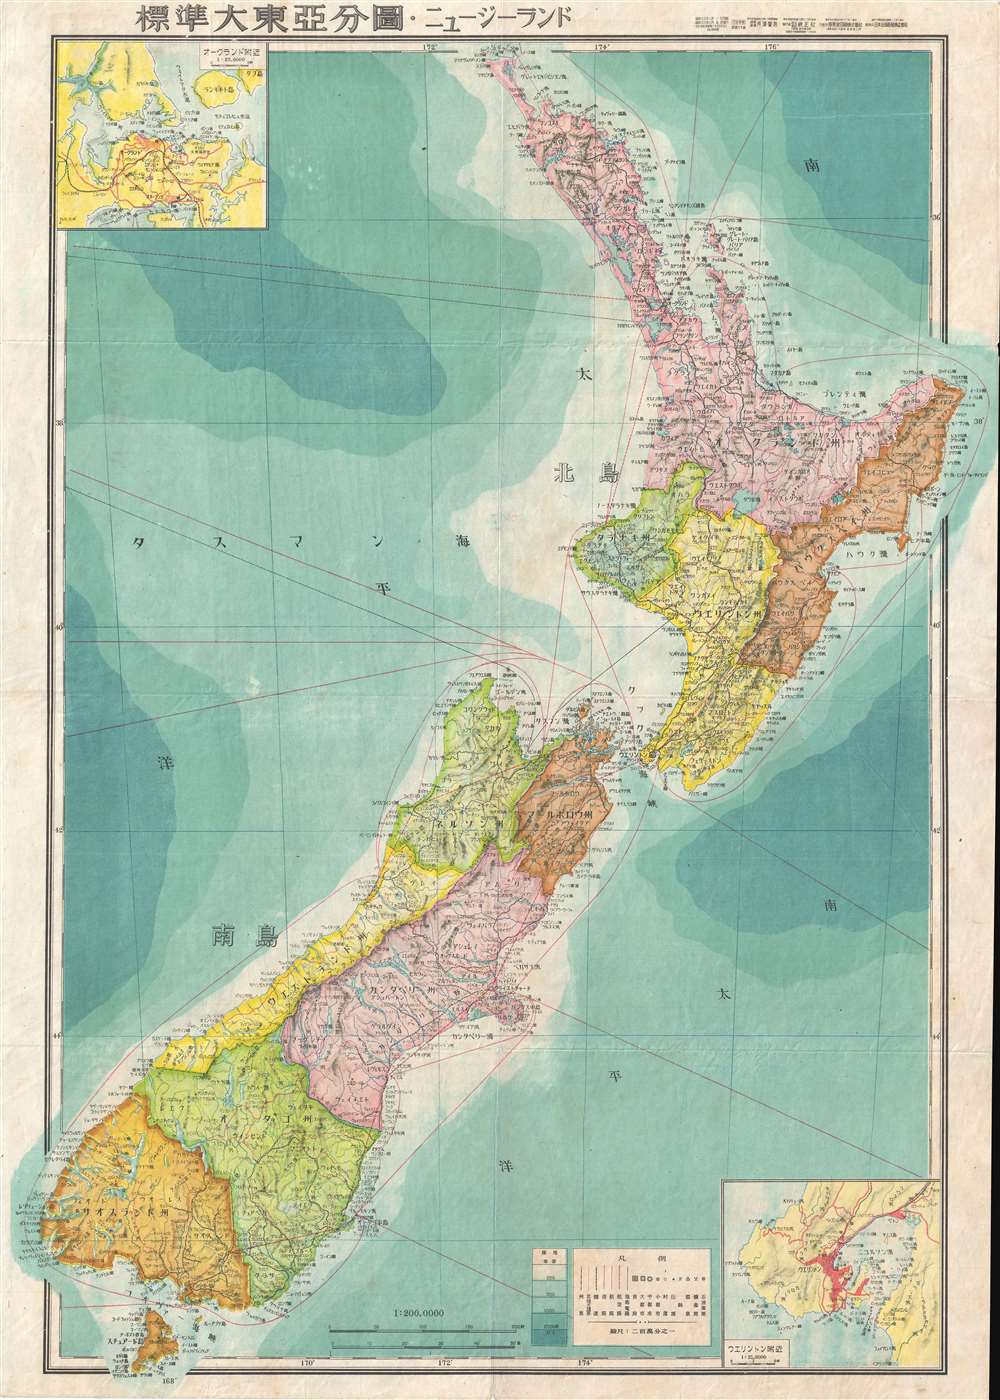 1943 or Showa 18 World War II Era Japanese Map of New Zealand